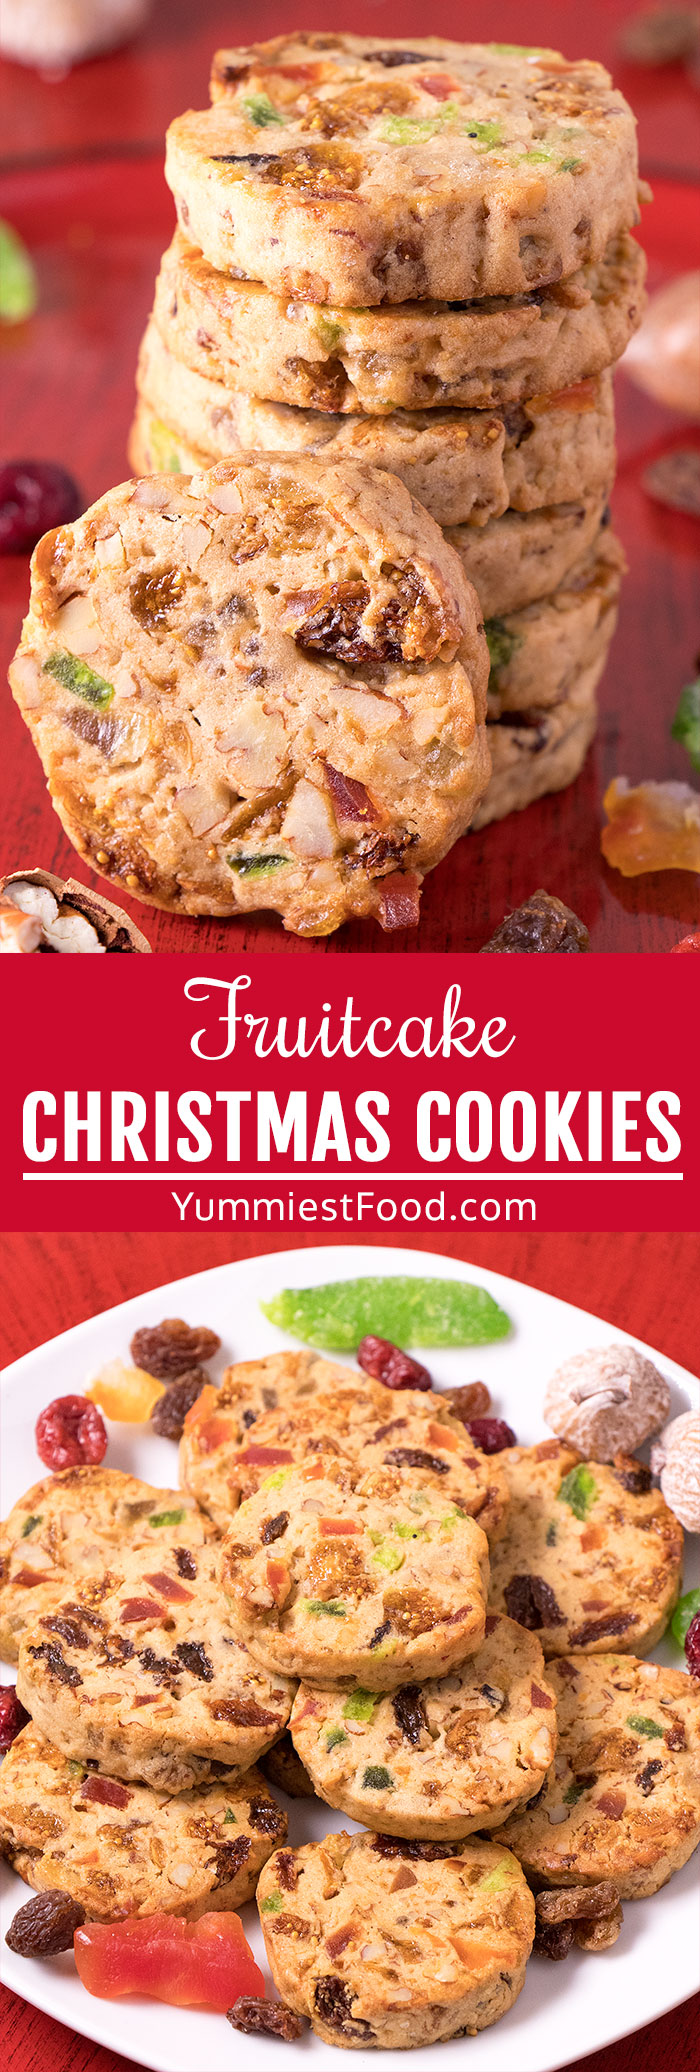 Fruitcake Christmas Cookies - These pretty, chewy and delicious Fruitcake Christmas Cookies, fruit rich and nut filled, with a hint of cinnamon and cloves, will surely be one of your favorite Fruitcake Cookies. #christmas #xmas #christmasrecipes #christmasdesserts #desserts #dessert #dessertrecipes #dessertfoodrecipes #cookies #easycookies #cookierecipe #christmascookies #fruitcakecookies